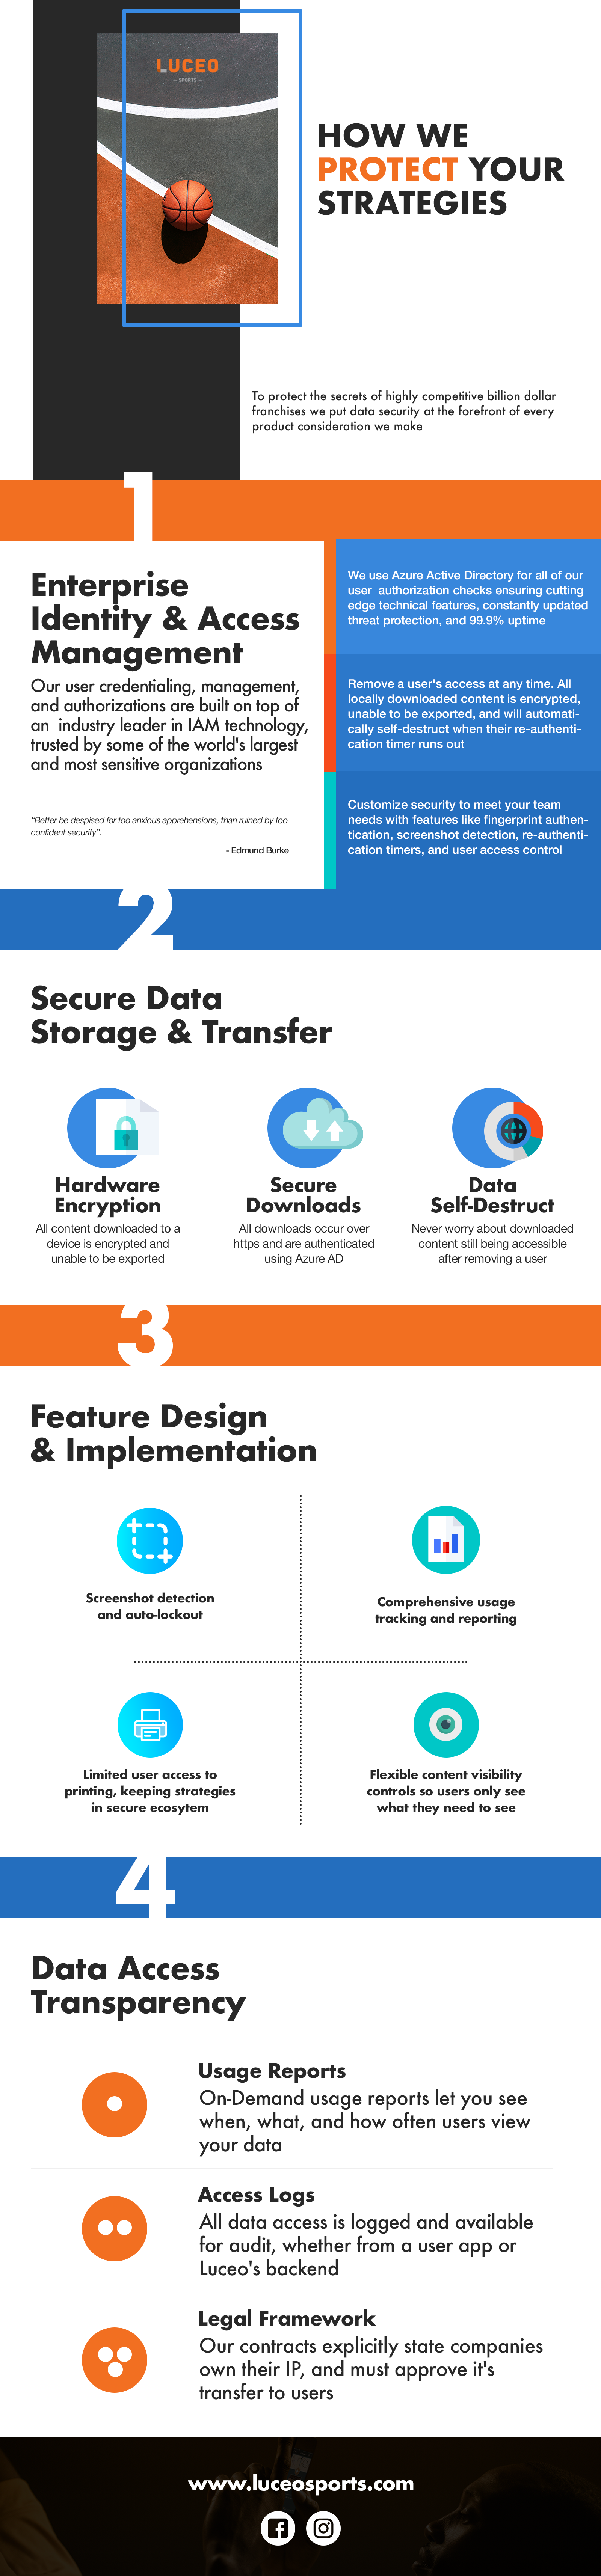 luceo_sports_security_infographic_kls